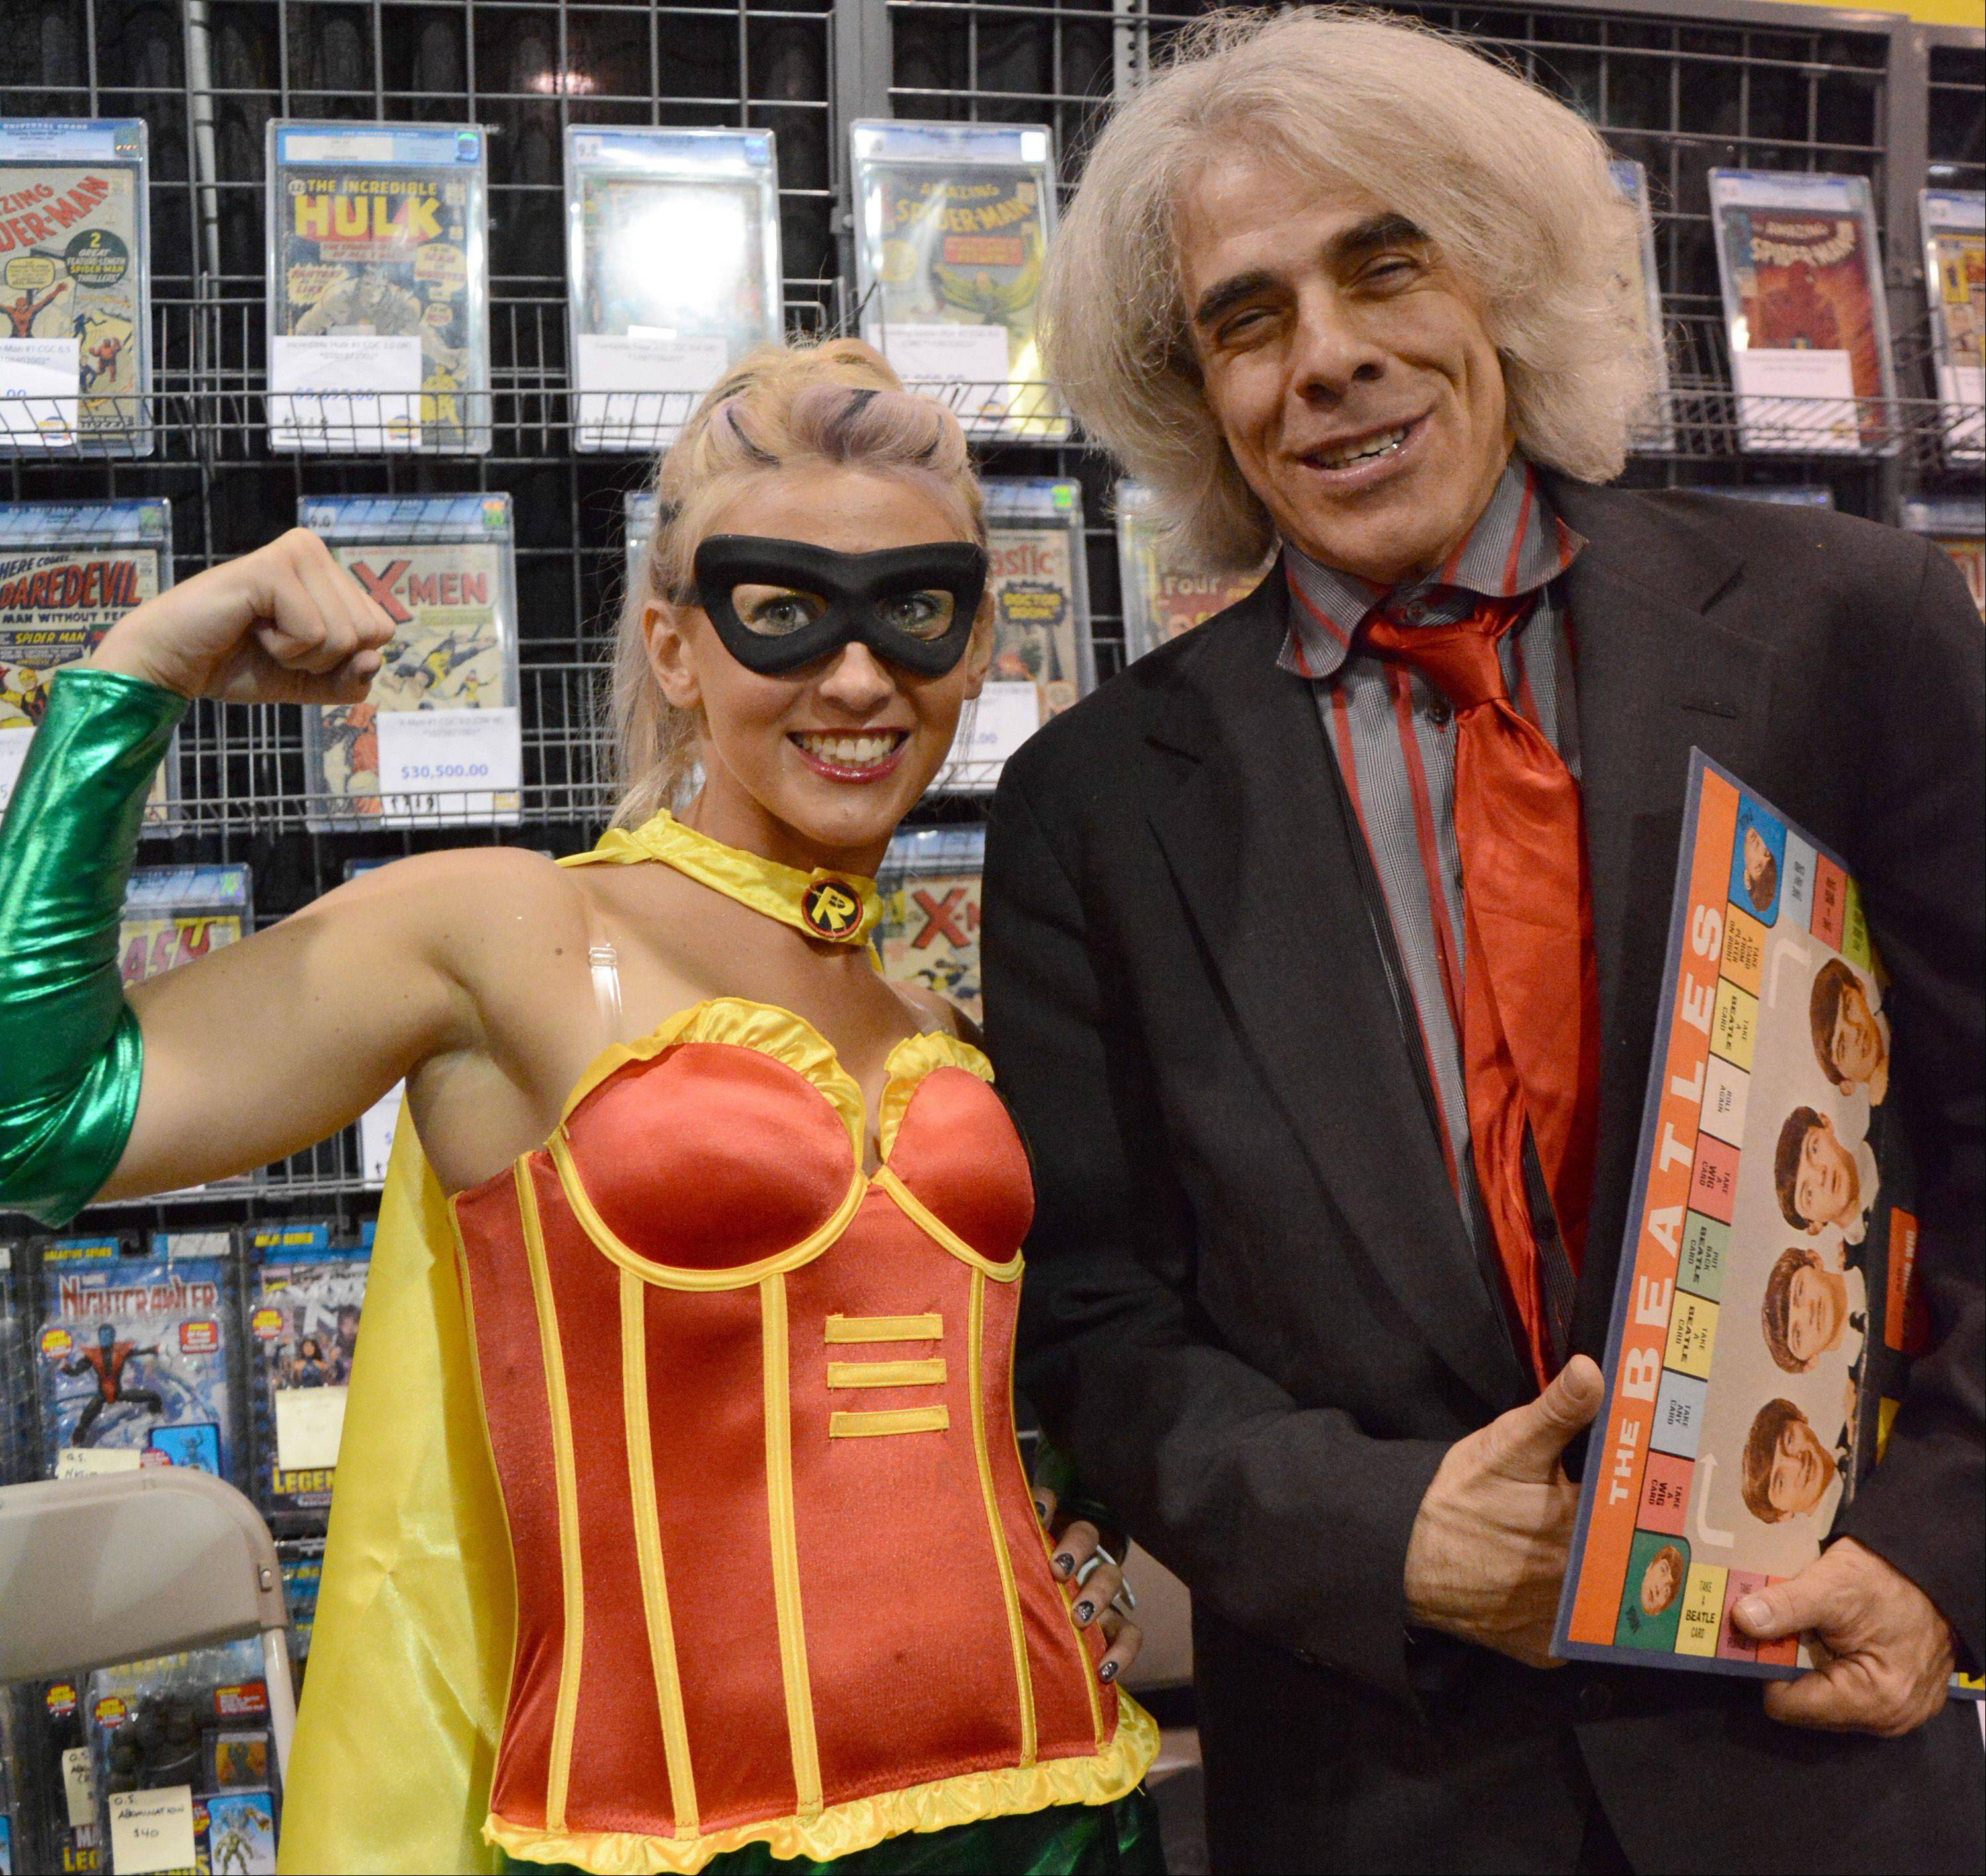 Alicia Ziller, left, of Highland Ind., and Mike Carbondaro, of Tonawanda, New York, pose for a photo during Wizard World Chicago Comic Con in Rosemont Sunday.